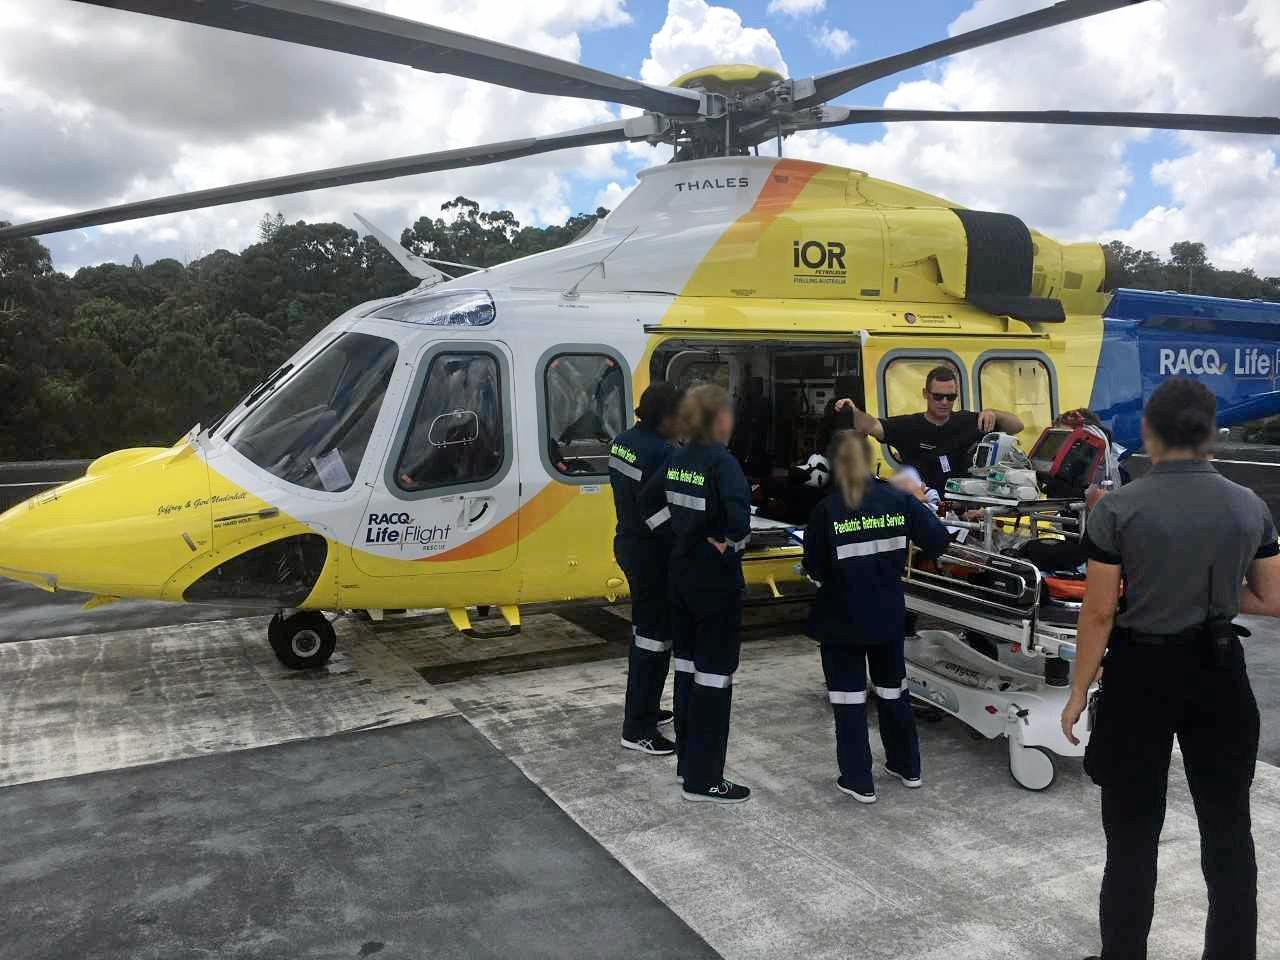 On Saturday the Brisbane based RACQ LifeFlight Rescue helicopter airlifted a pediatric intensive care team from the Lady Cilento Children's Hospital to Nambour Hospital to airlift a male toddler that had suffered a serious head injury in an earlier motor vehicle accident. He was flown in a stable condition.